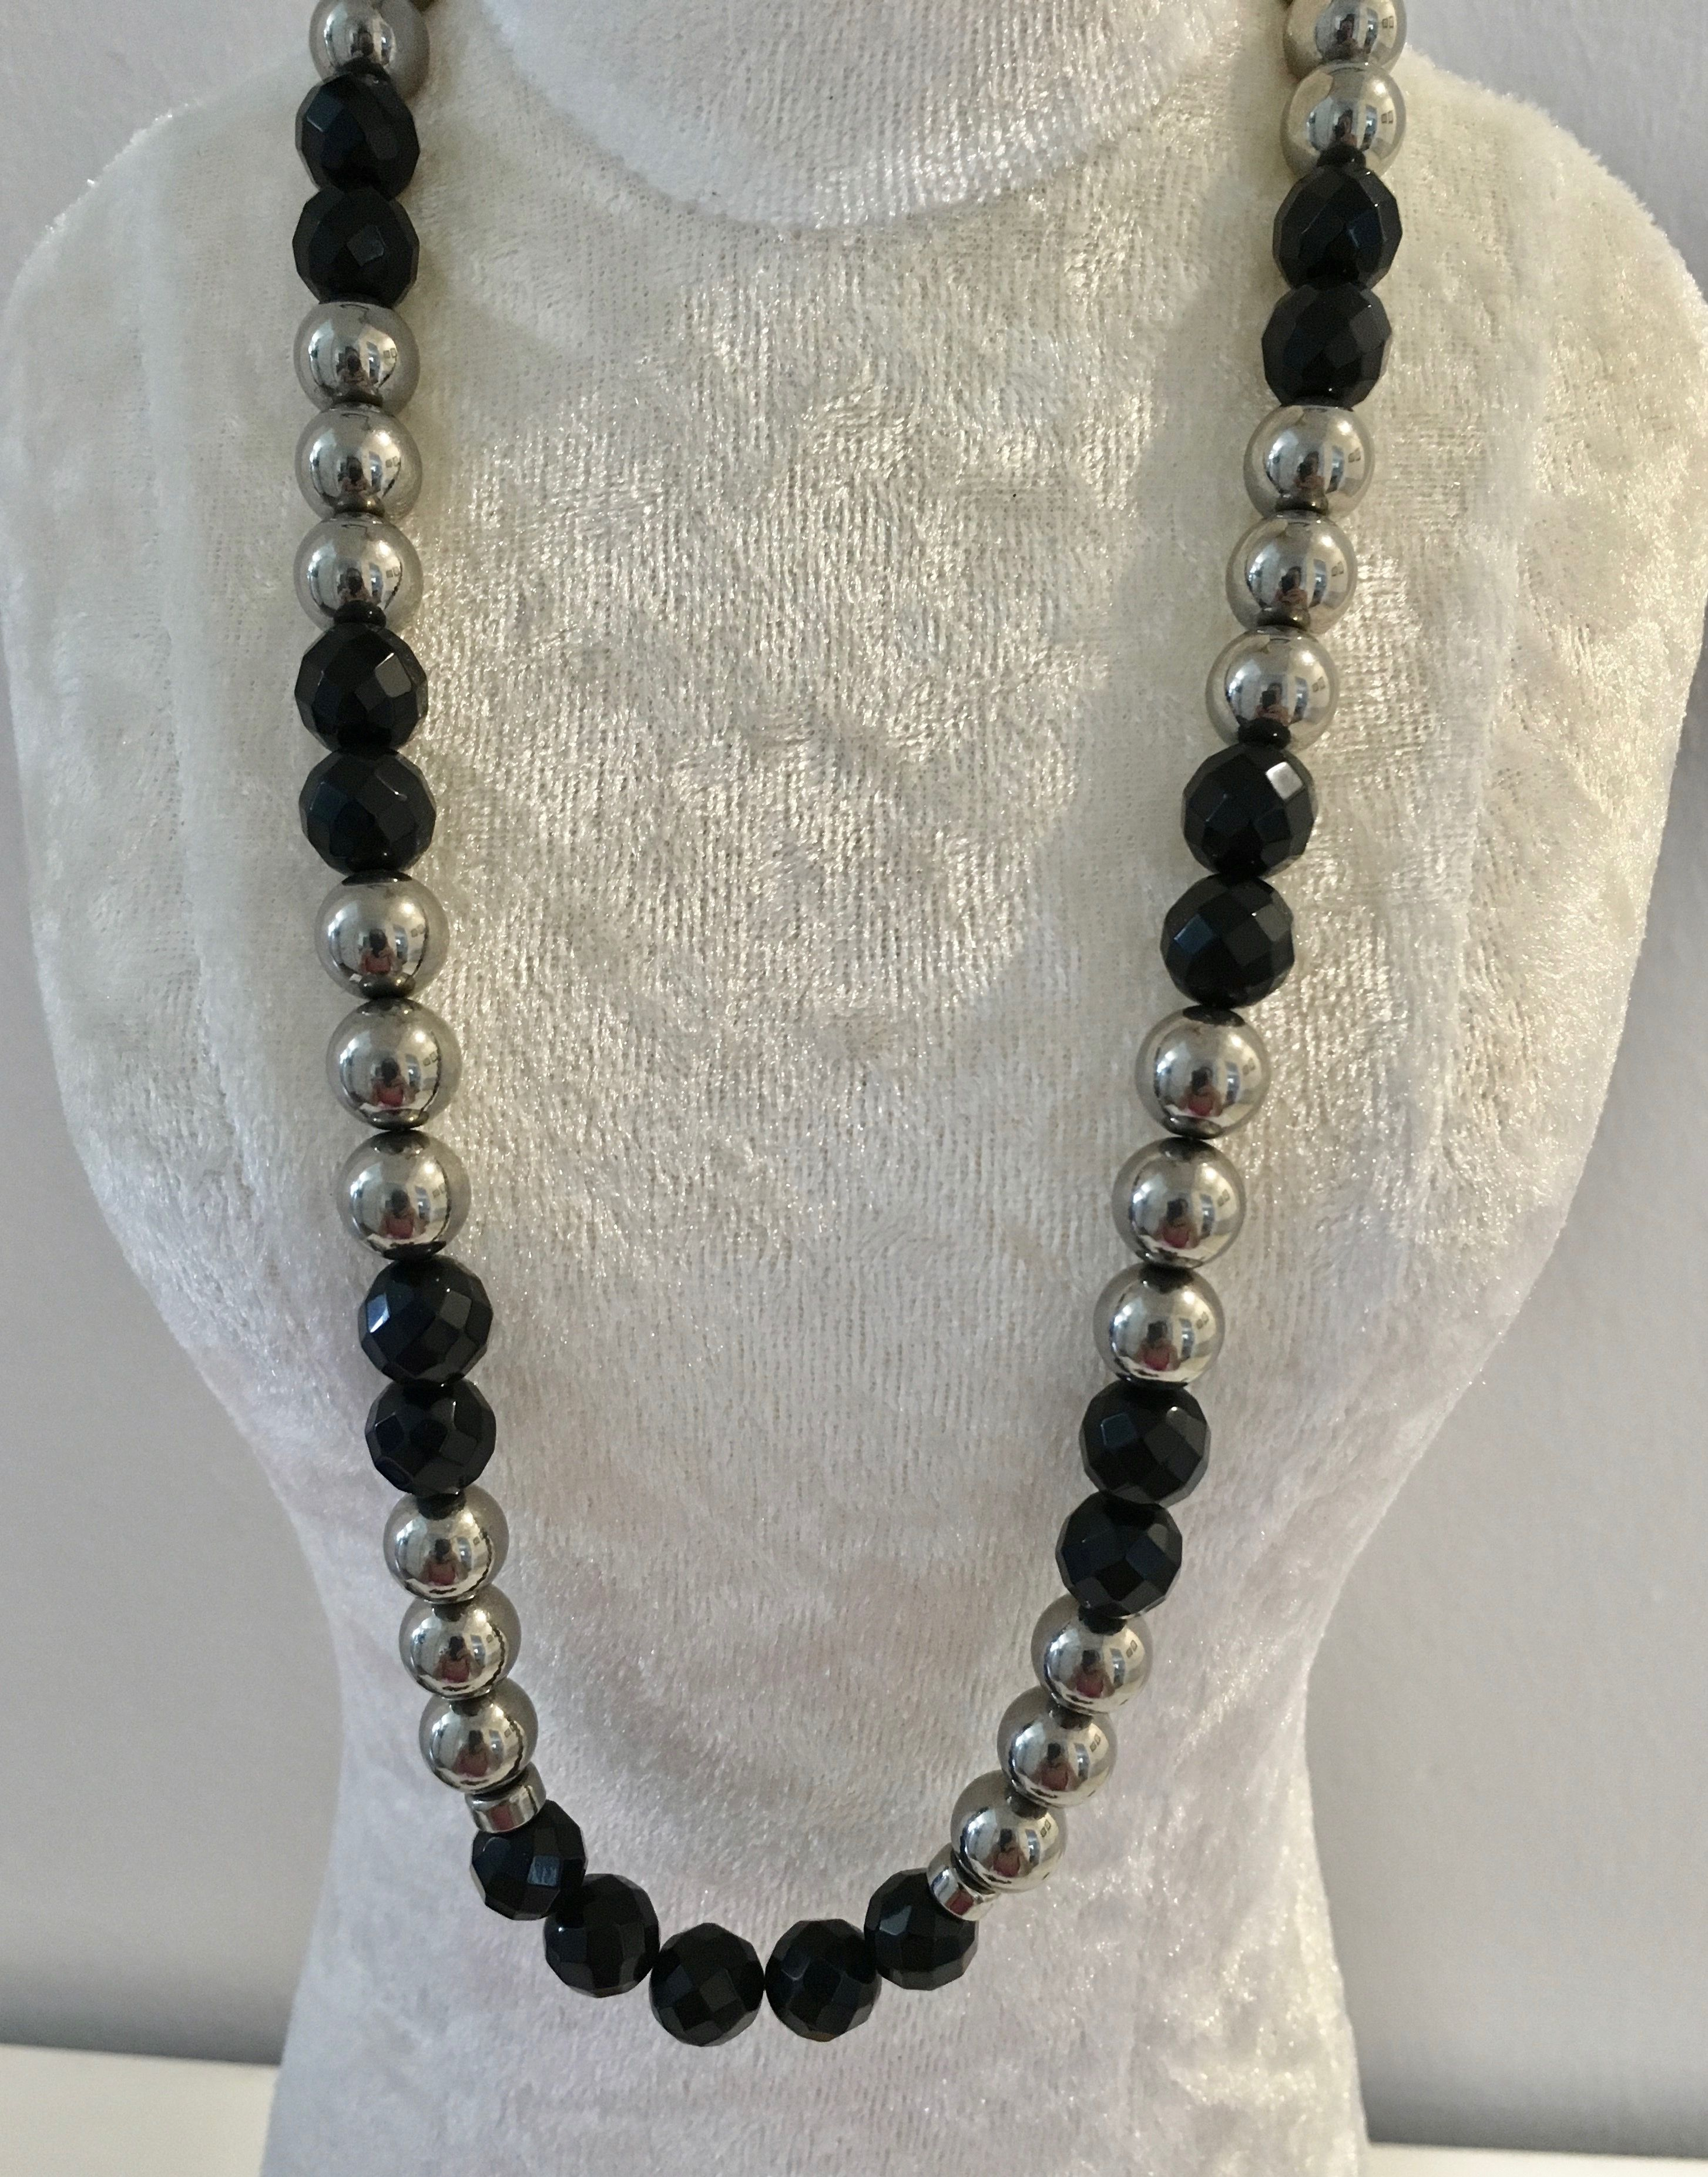 Onxy and Sterling Silver Beads Necklace $140 Check out - Belle4ever.com